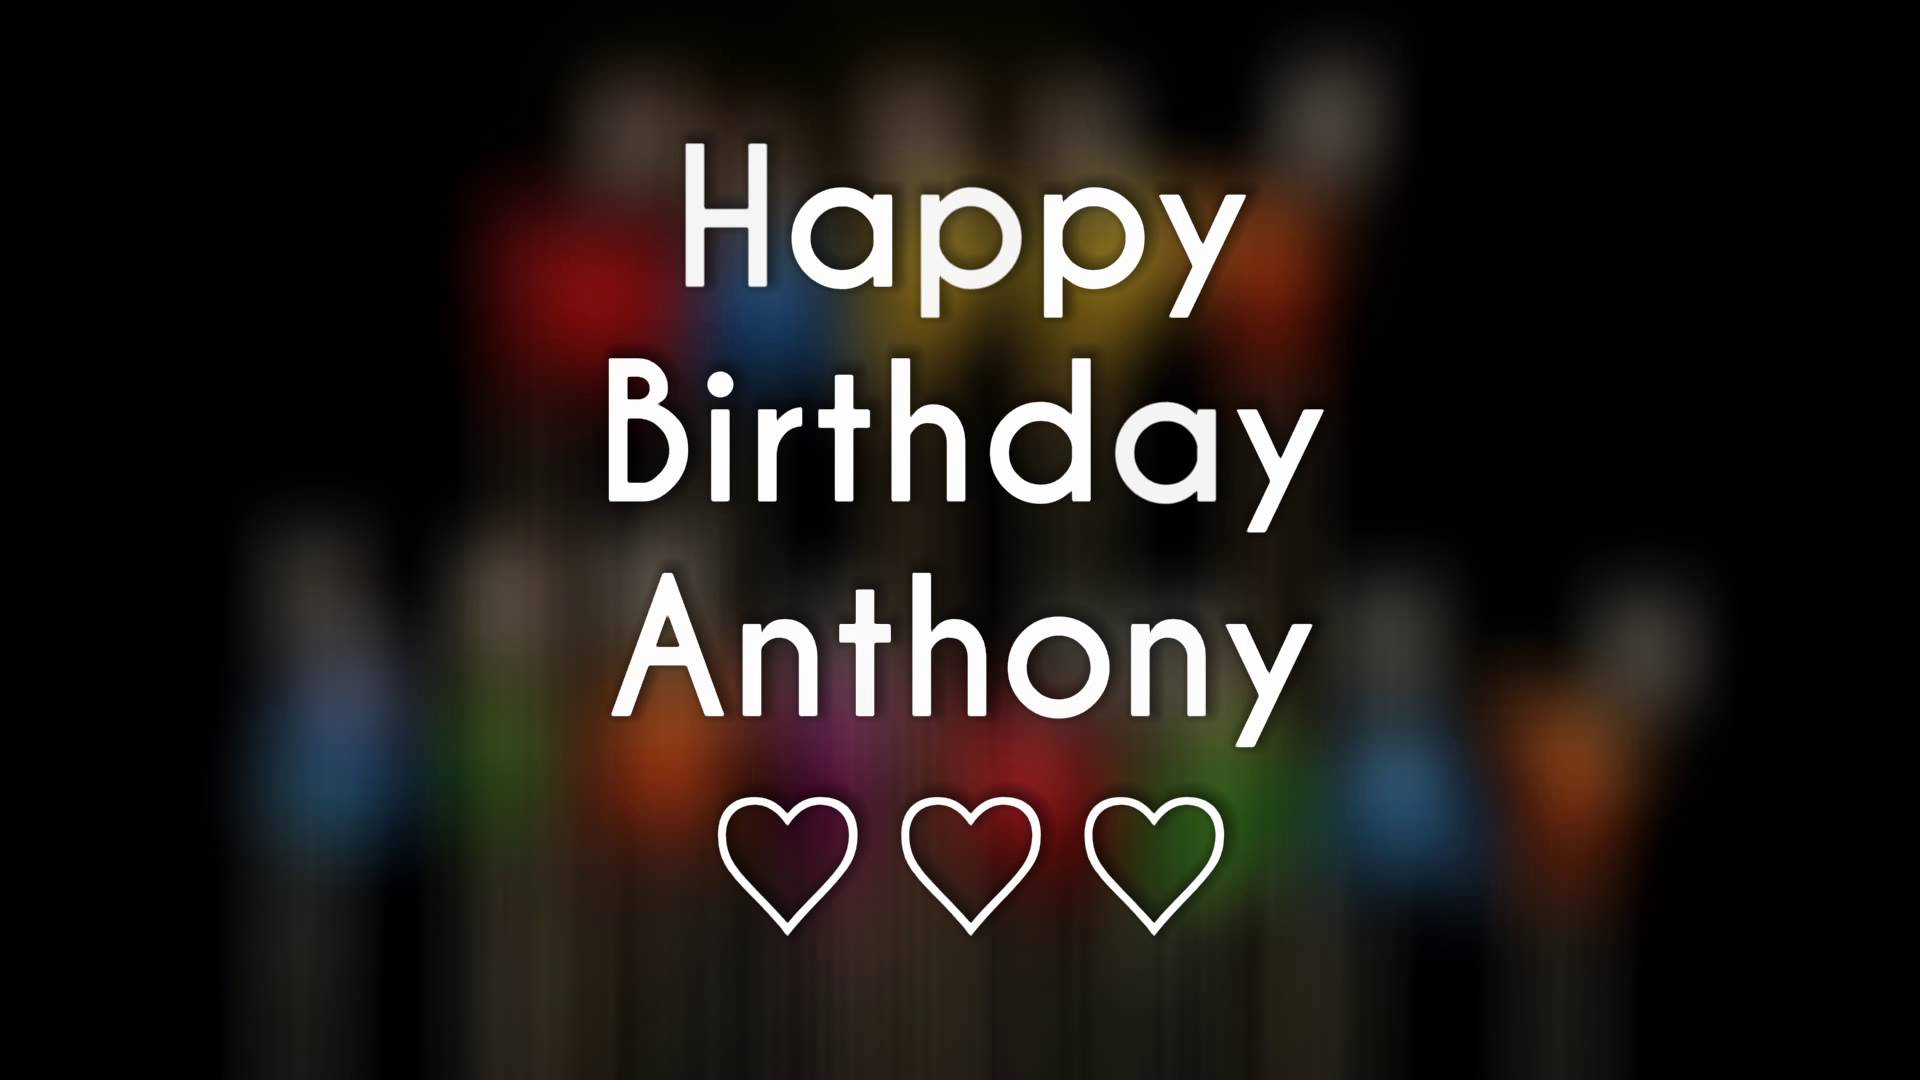 happy birthday anthony images ; maxresdefault-4